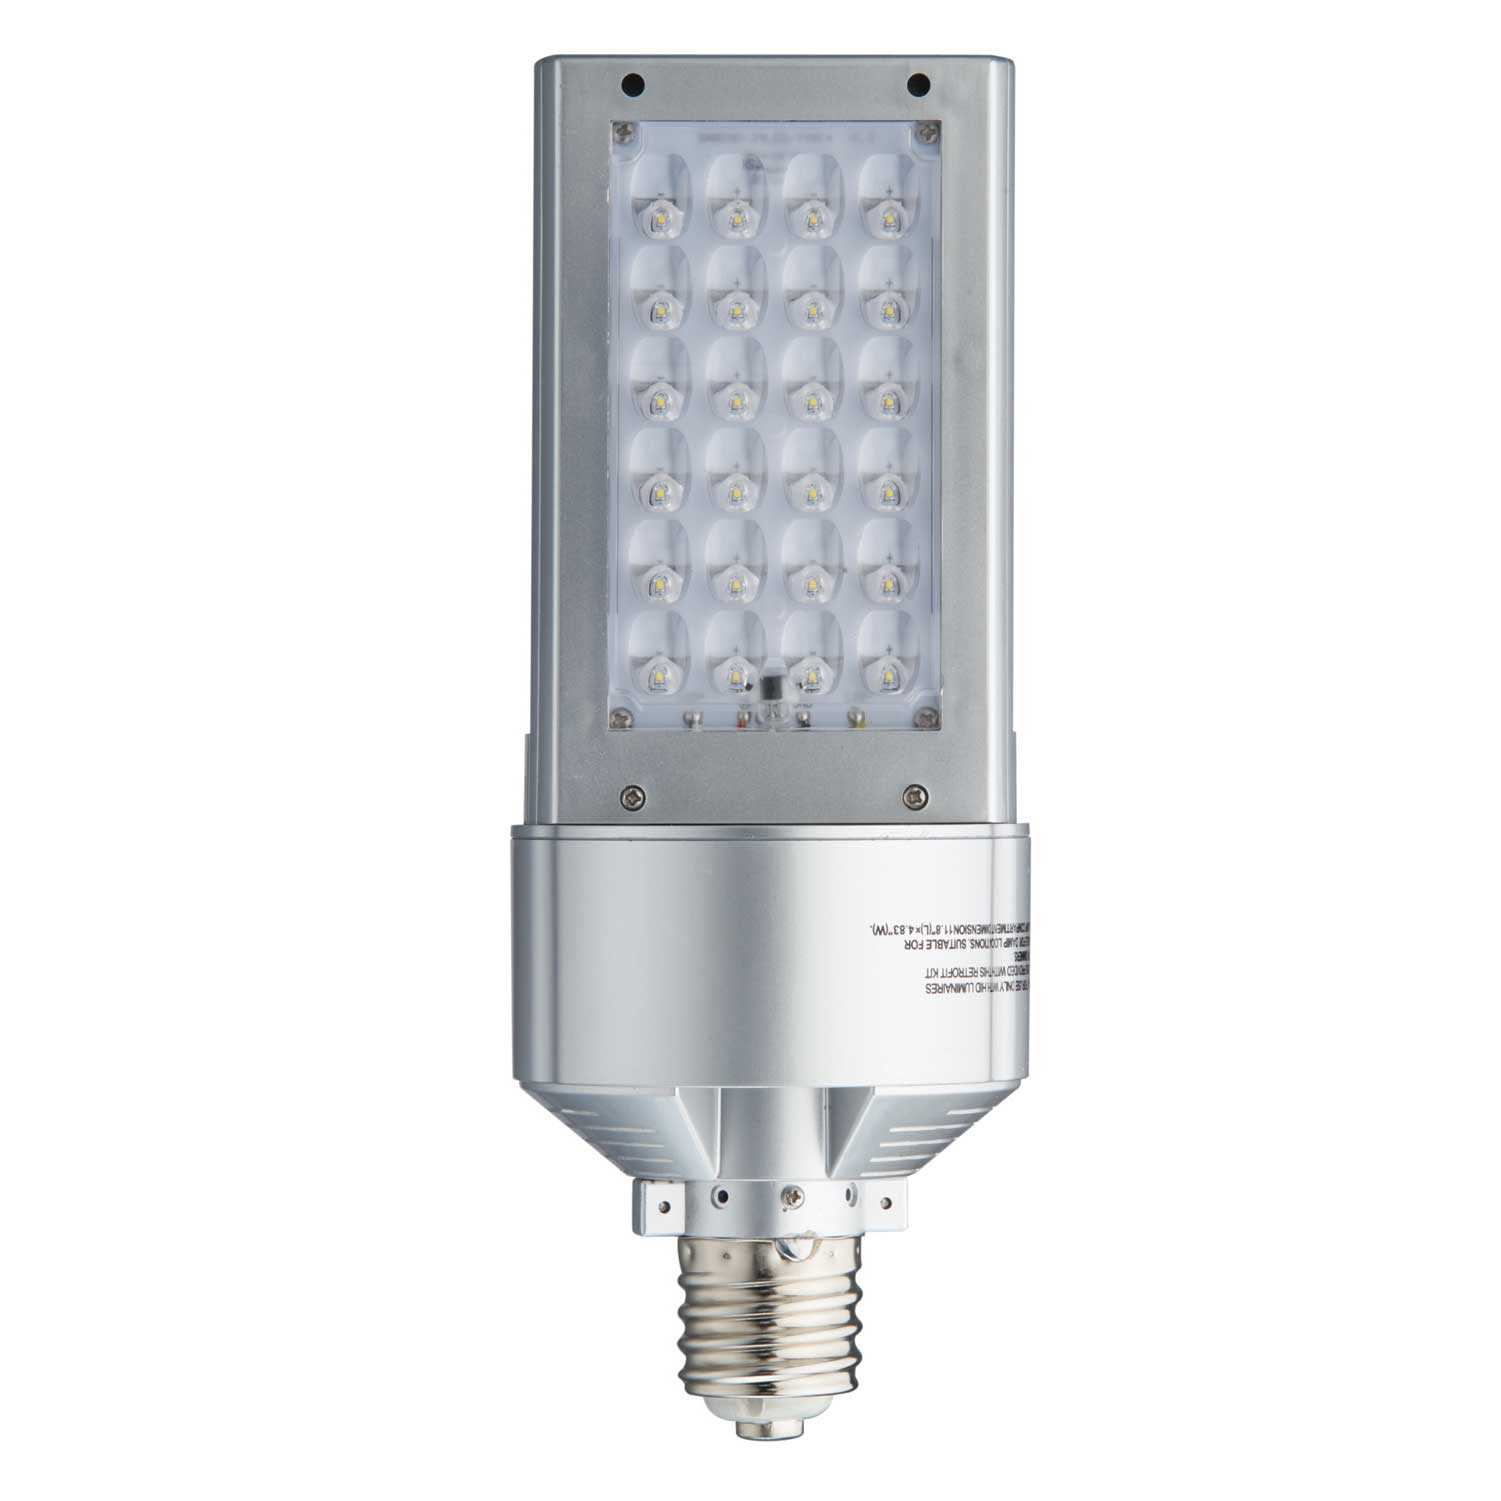 Led Lamps For Wall Packs : Light Efficient Design Led-8090M5T4 Bulb 120W Shoebox/Wall Pack Type Iv Optics Great Brands Outlet